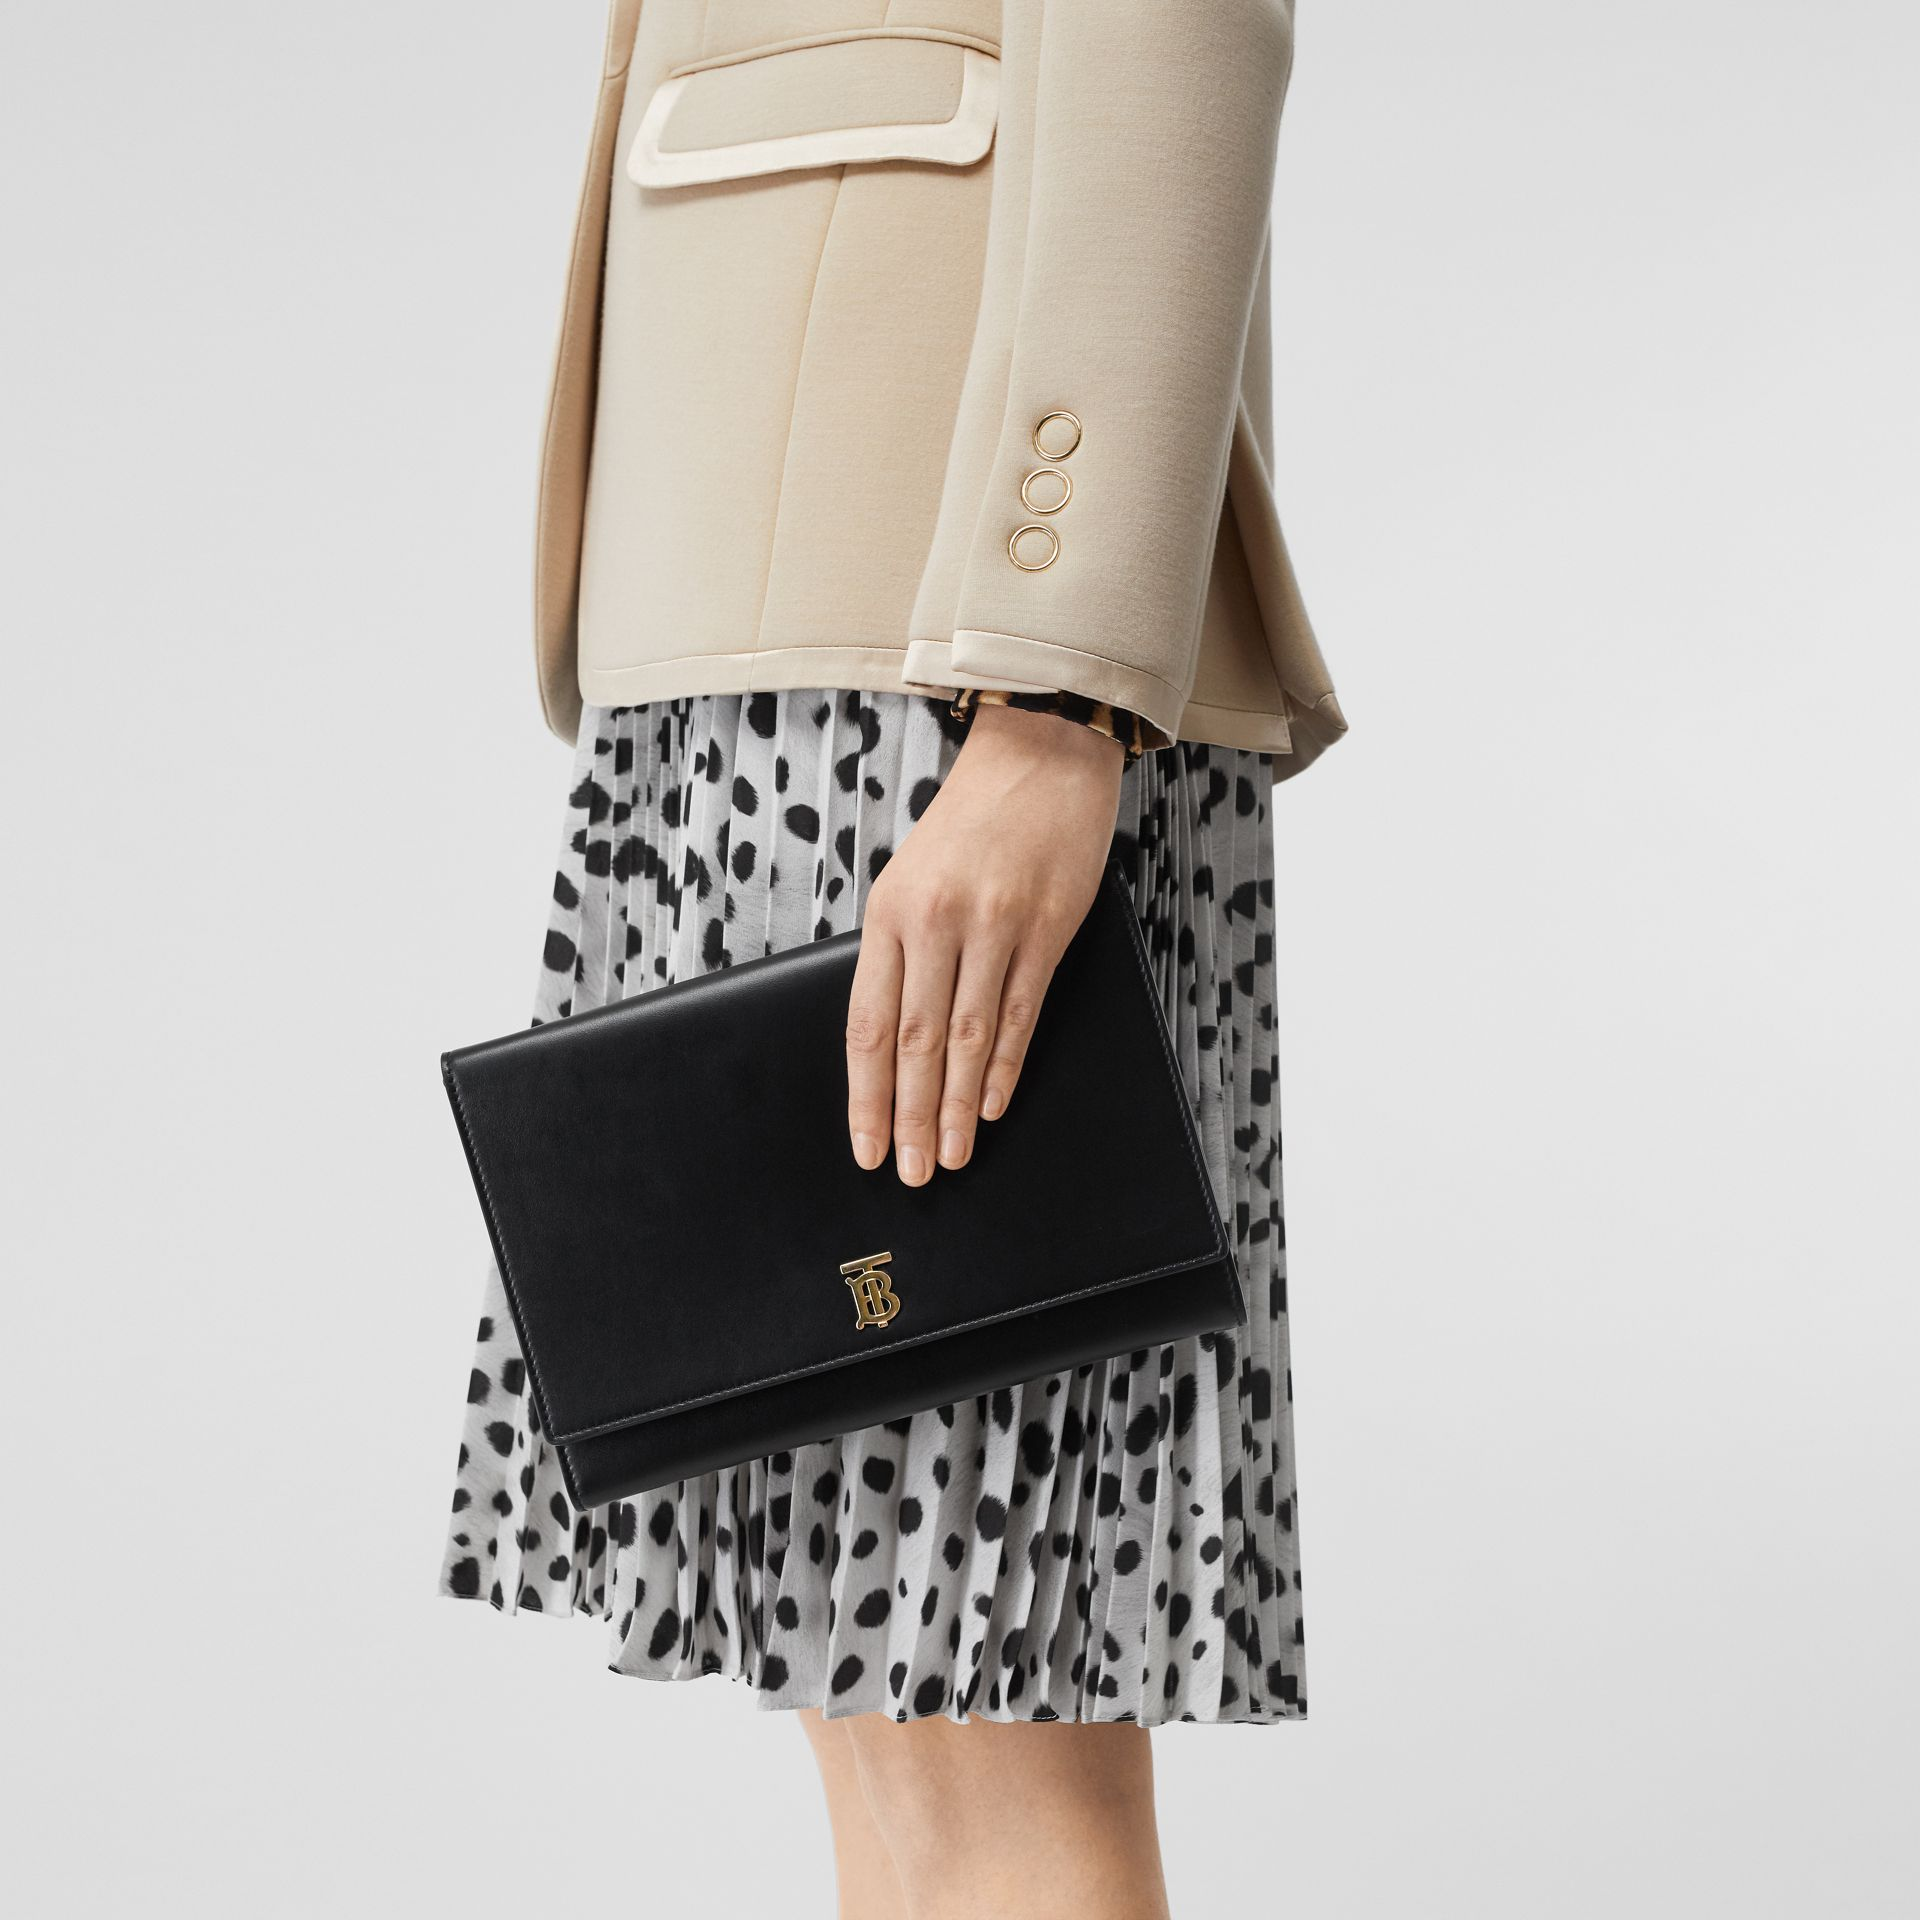 Monogram Motif Leather Bag with Detachable Strap in Black - Women | Burberry Australia - gallery image 2